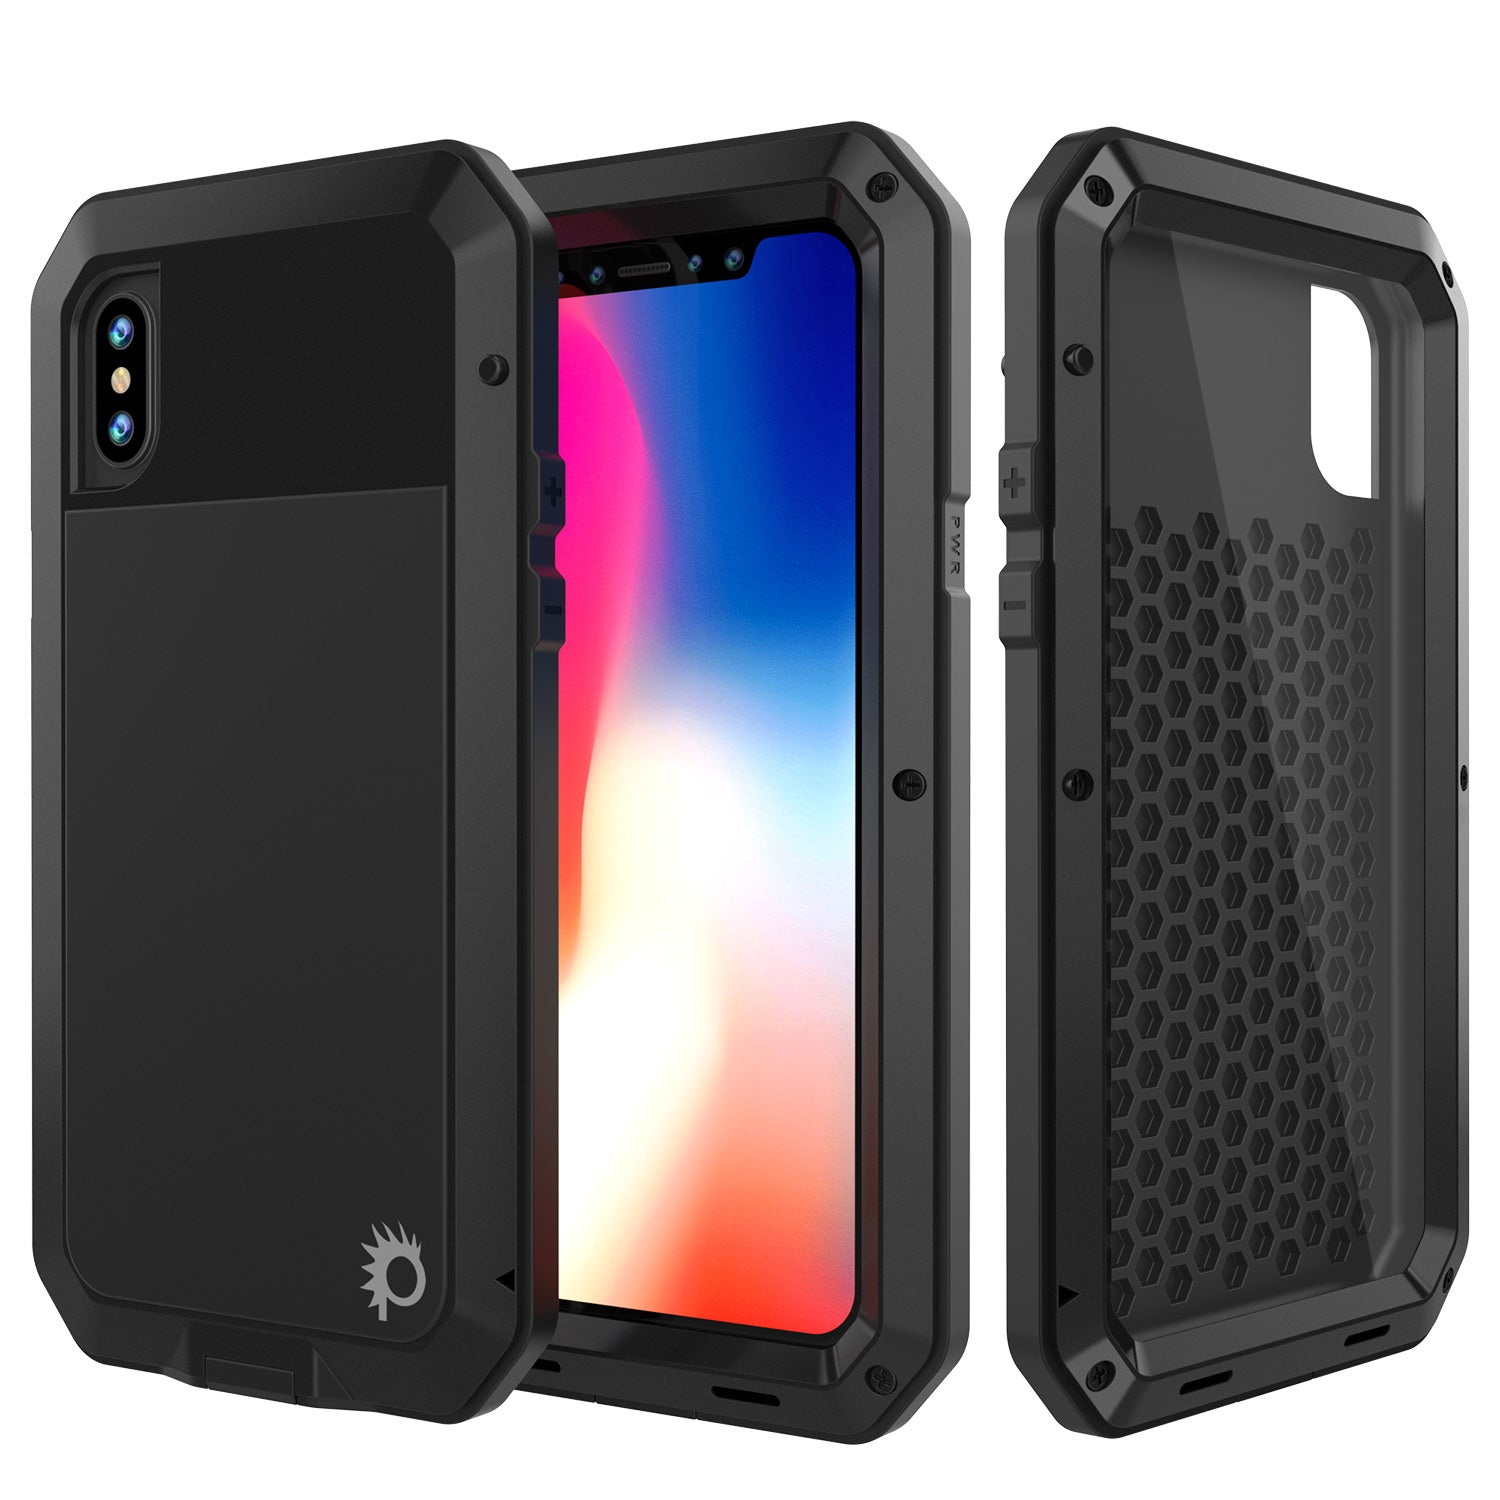 outlet store 22a64 b9aed iPhone X Metal Case, Heavy Duty Military Grade Rugged Black Armor Cover  [shock proof] Hybrid Full Body Hard Aluminum & TPU Design